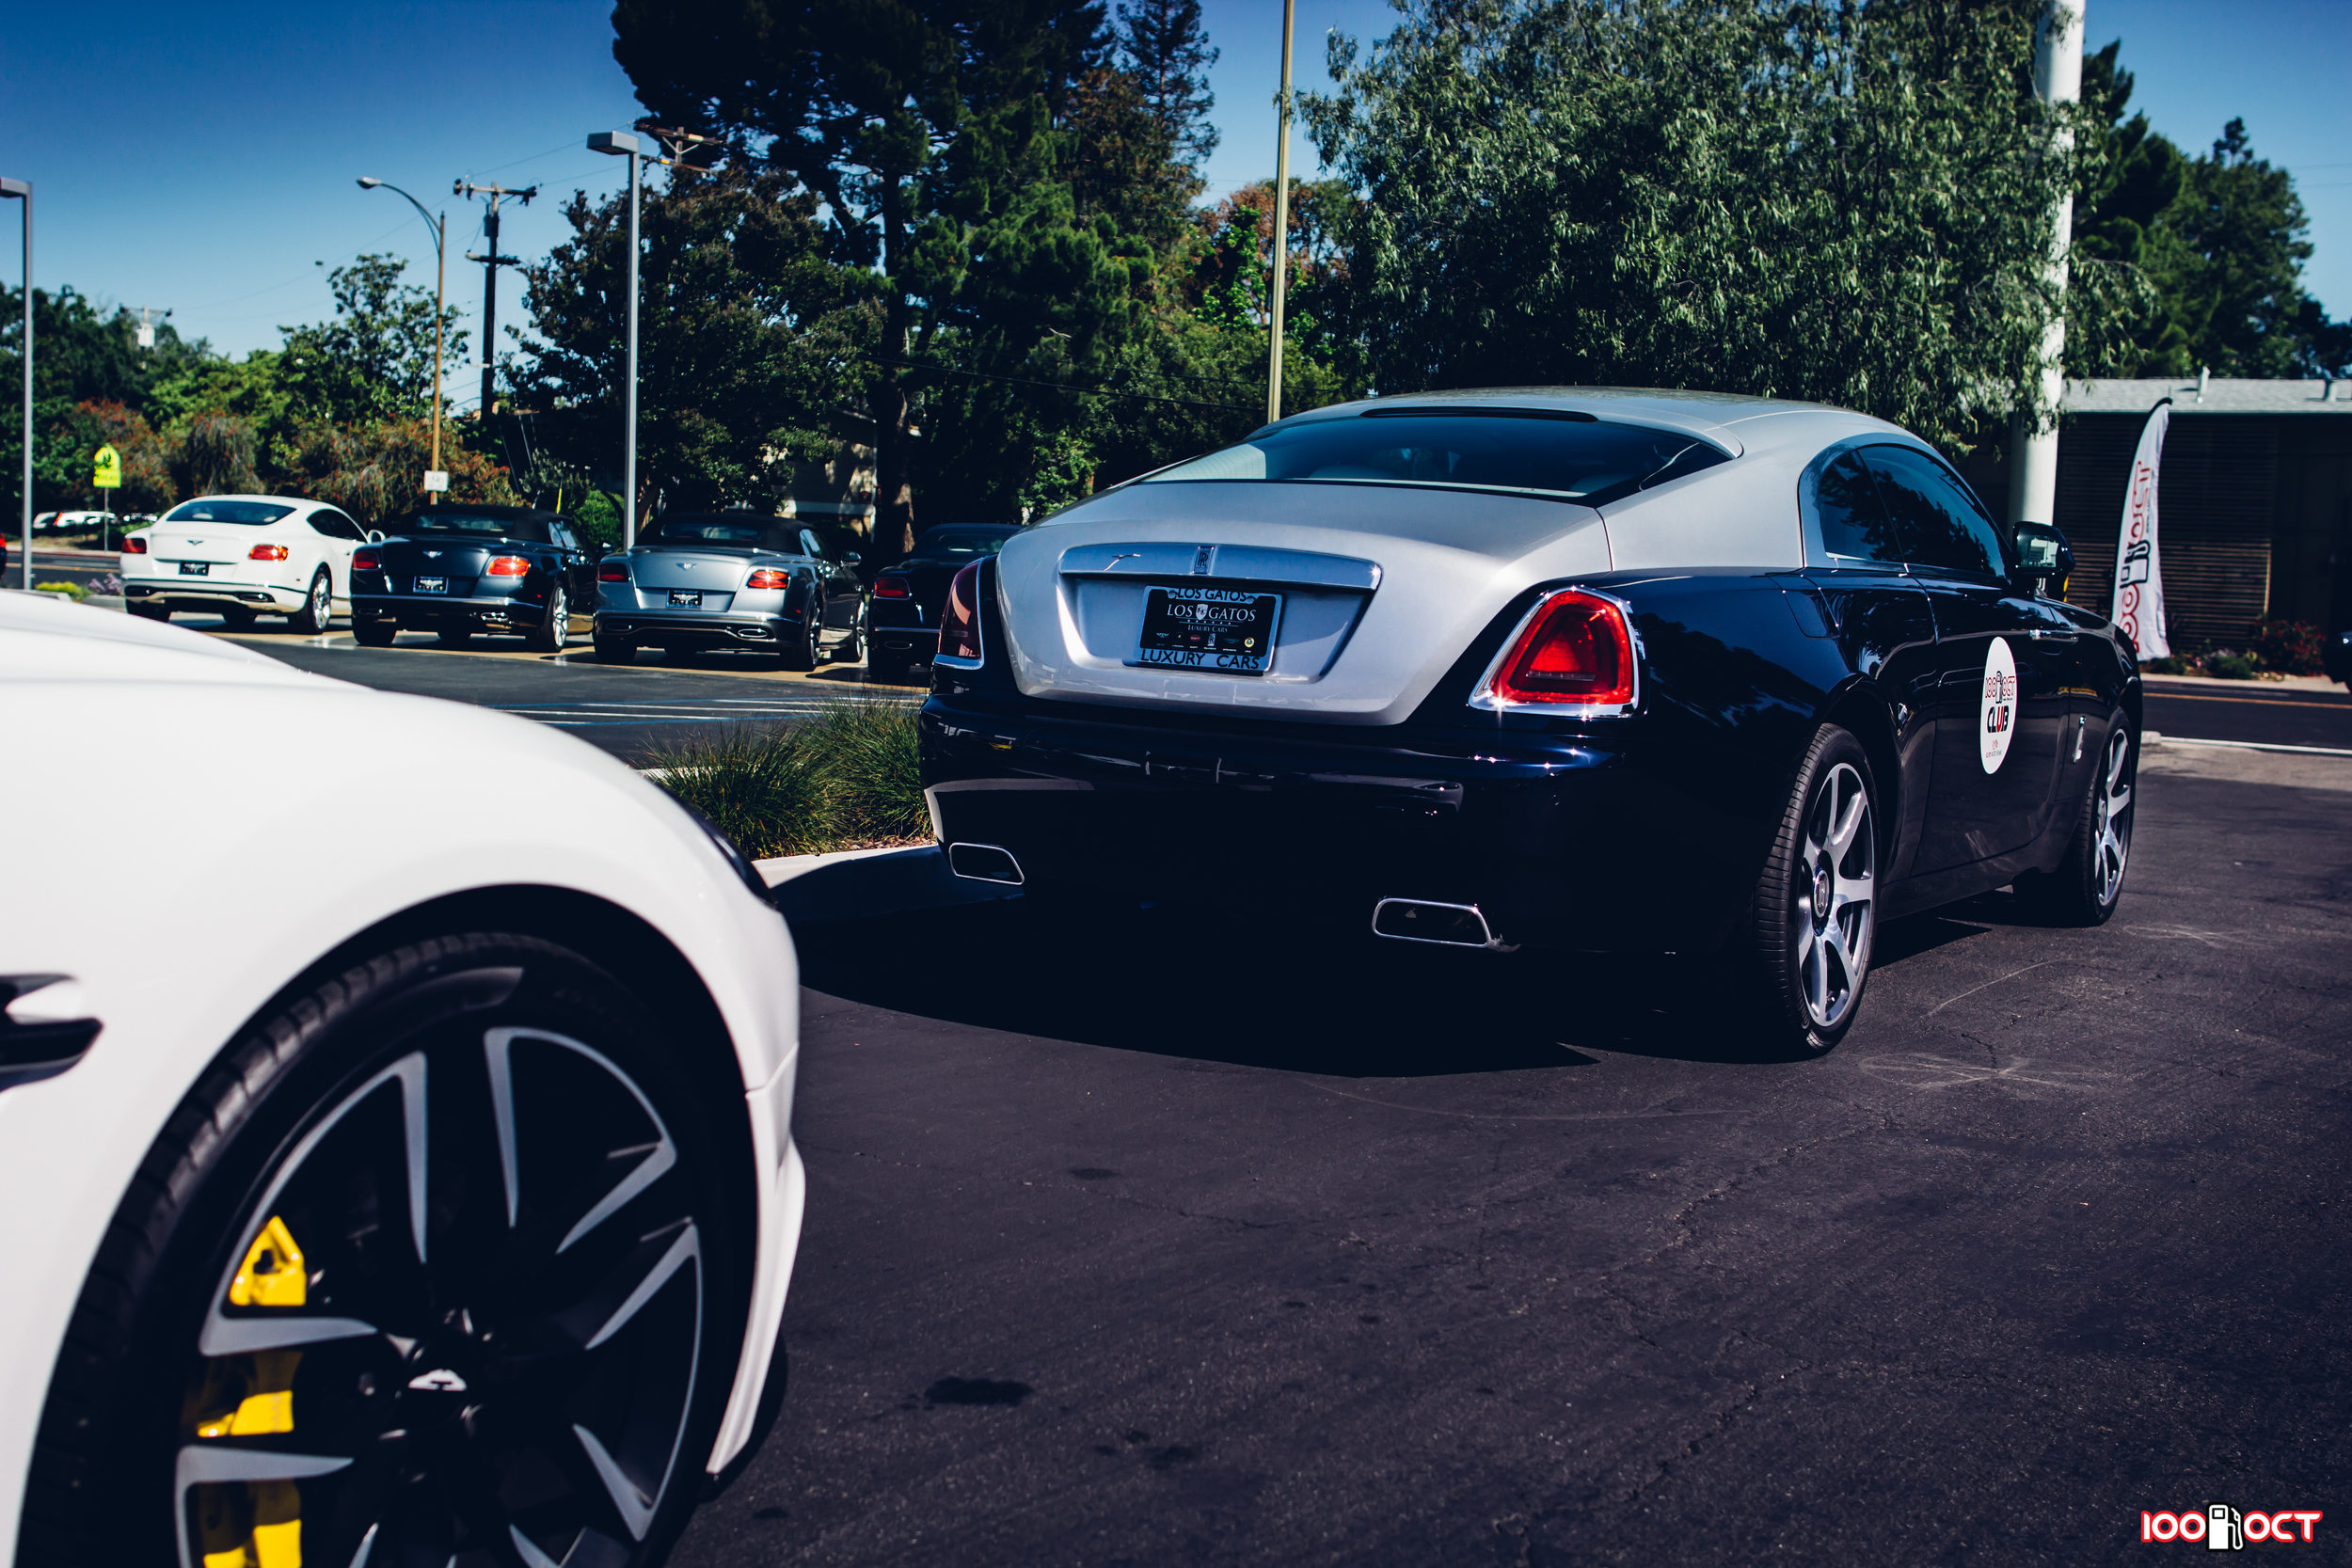 When it comes to elegance, Rolls Royce has it down!Credits: Dayne Dyer